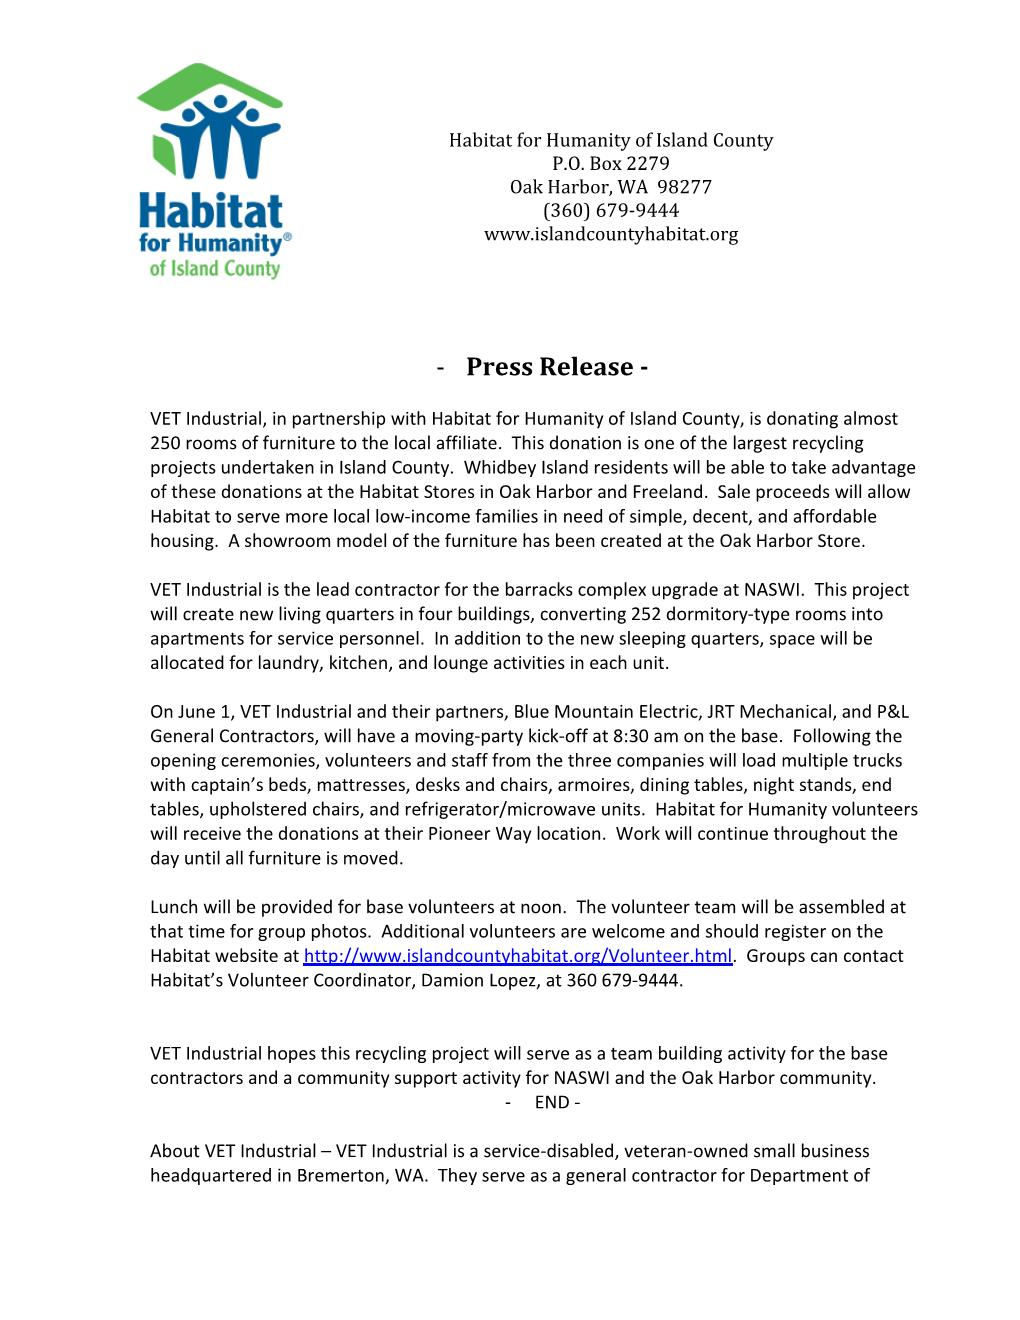 VET Industrial Press Release Page 001